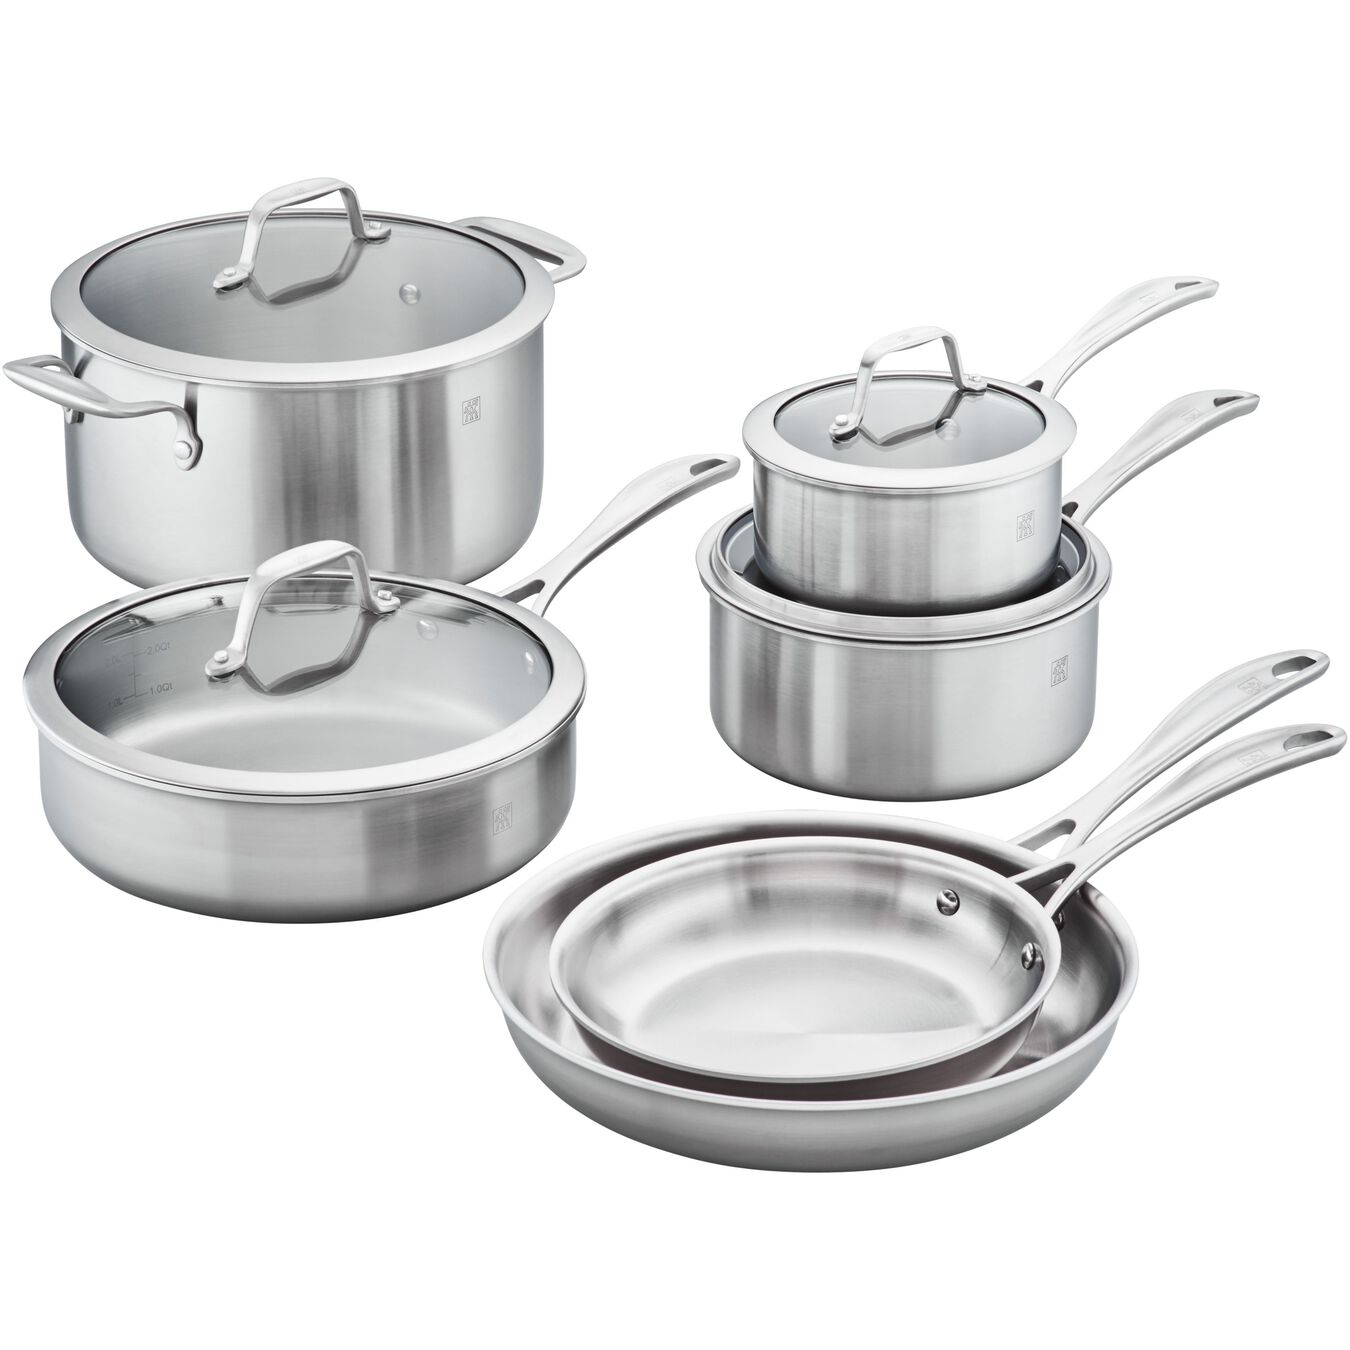 10-pc, 18/10 Stainless Steel, Pots and pans set,,large 1